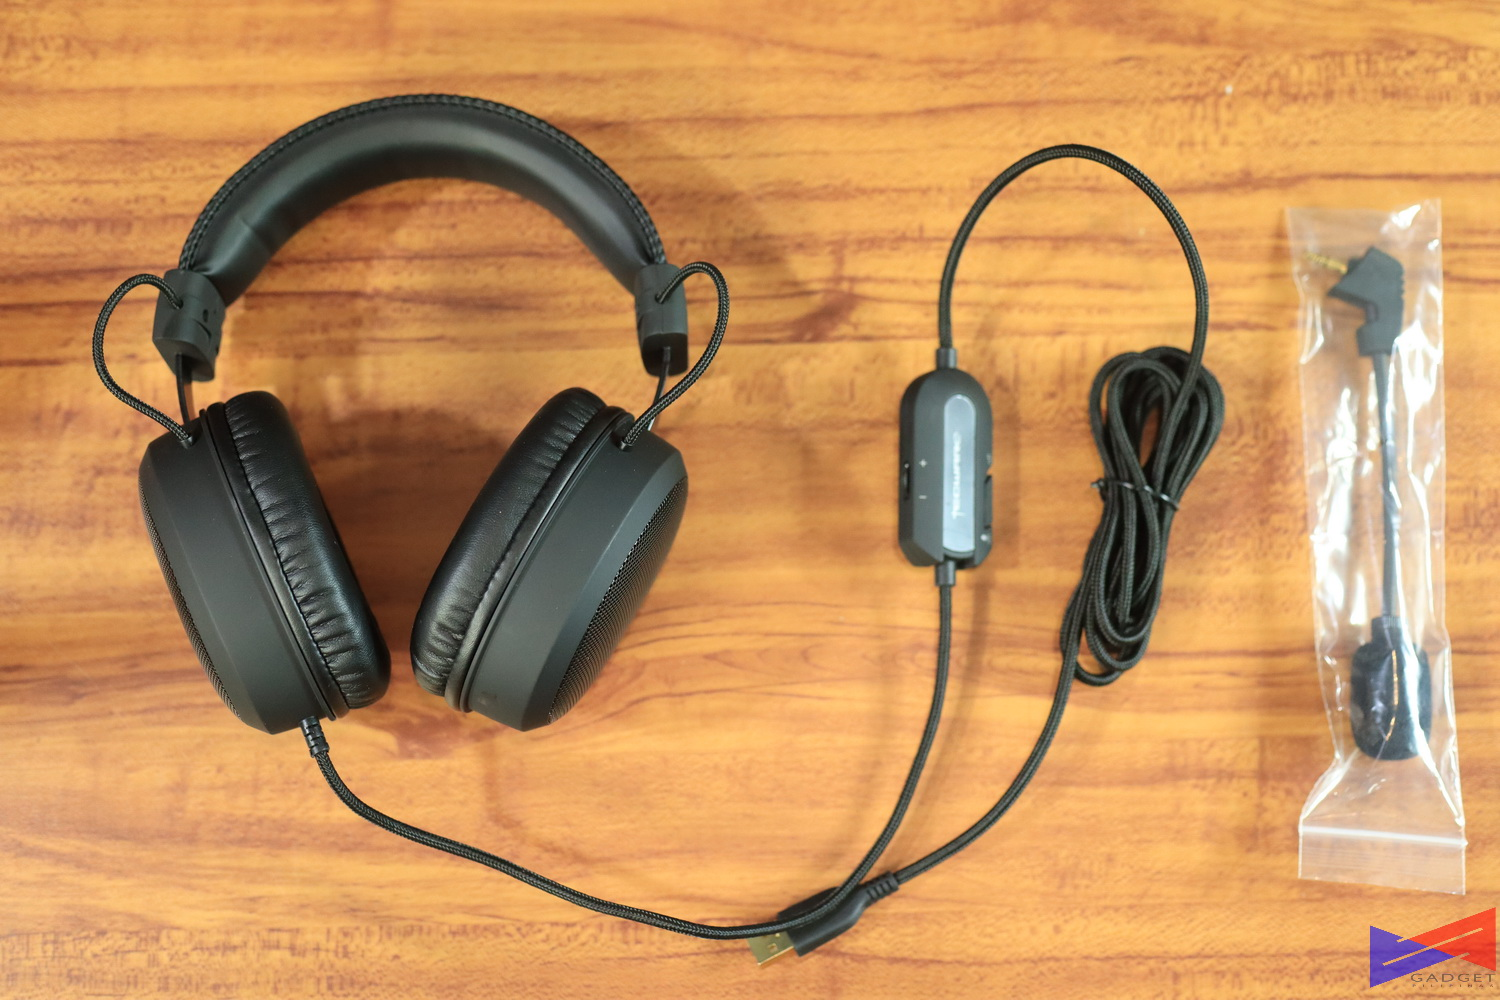 Tecware Q5, Tecware Q5 Gaming Headset Review and Giveaway, Gadget Pilipinas, Gadget Pilipinas